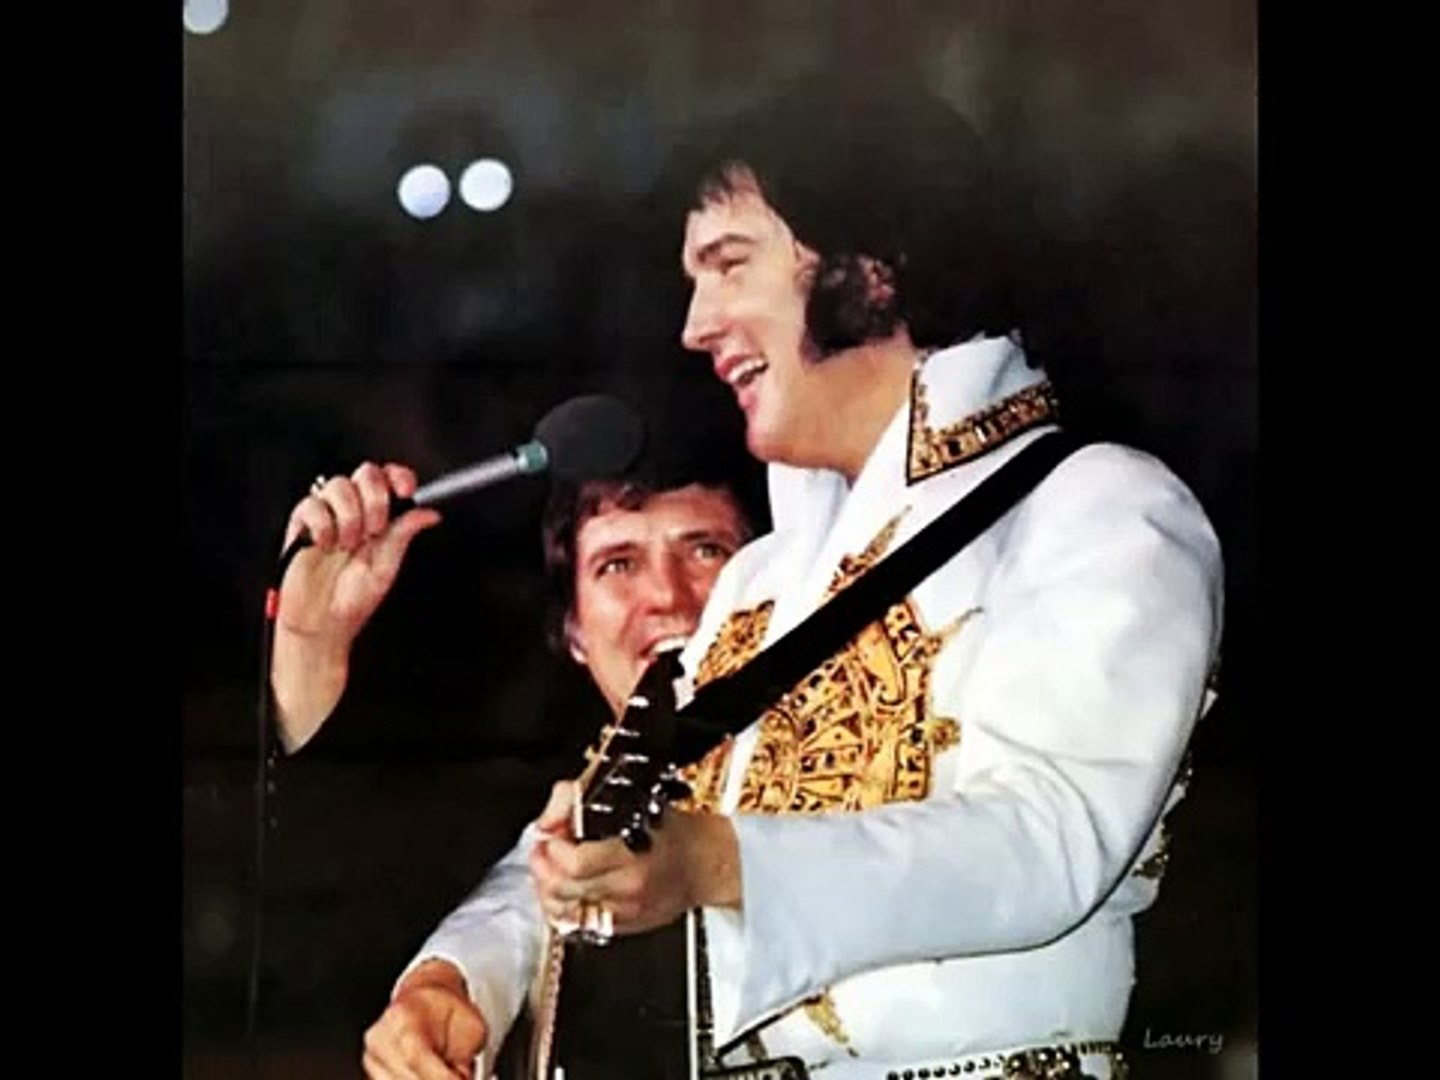 Elvis Presley - Little Sister - April 24, 1977 (Live)  Crisler Arena, Ann Arbor, Michigan